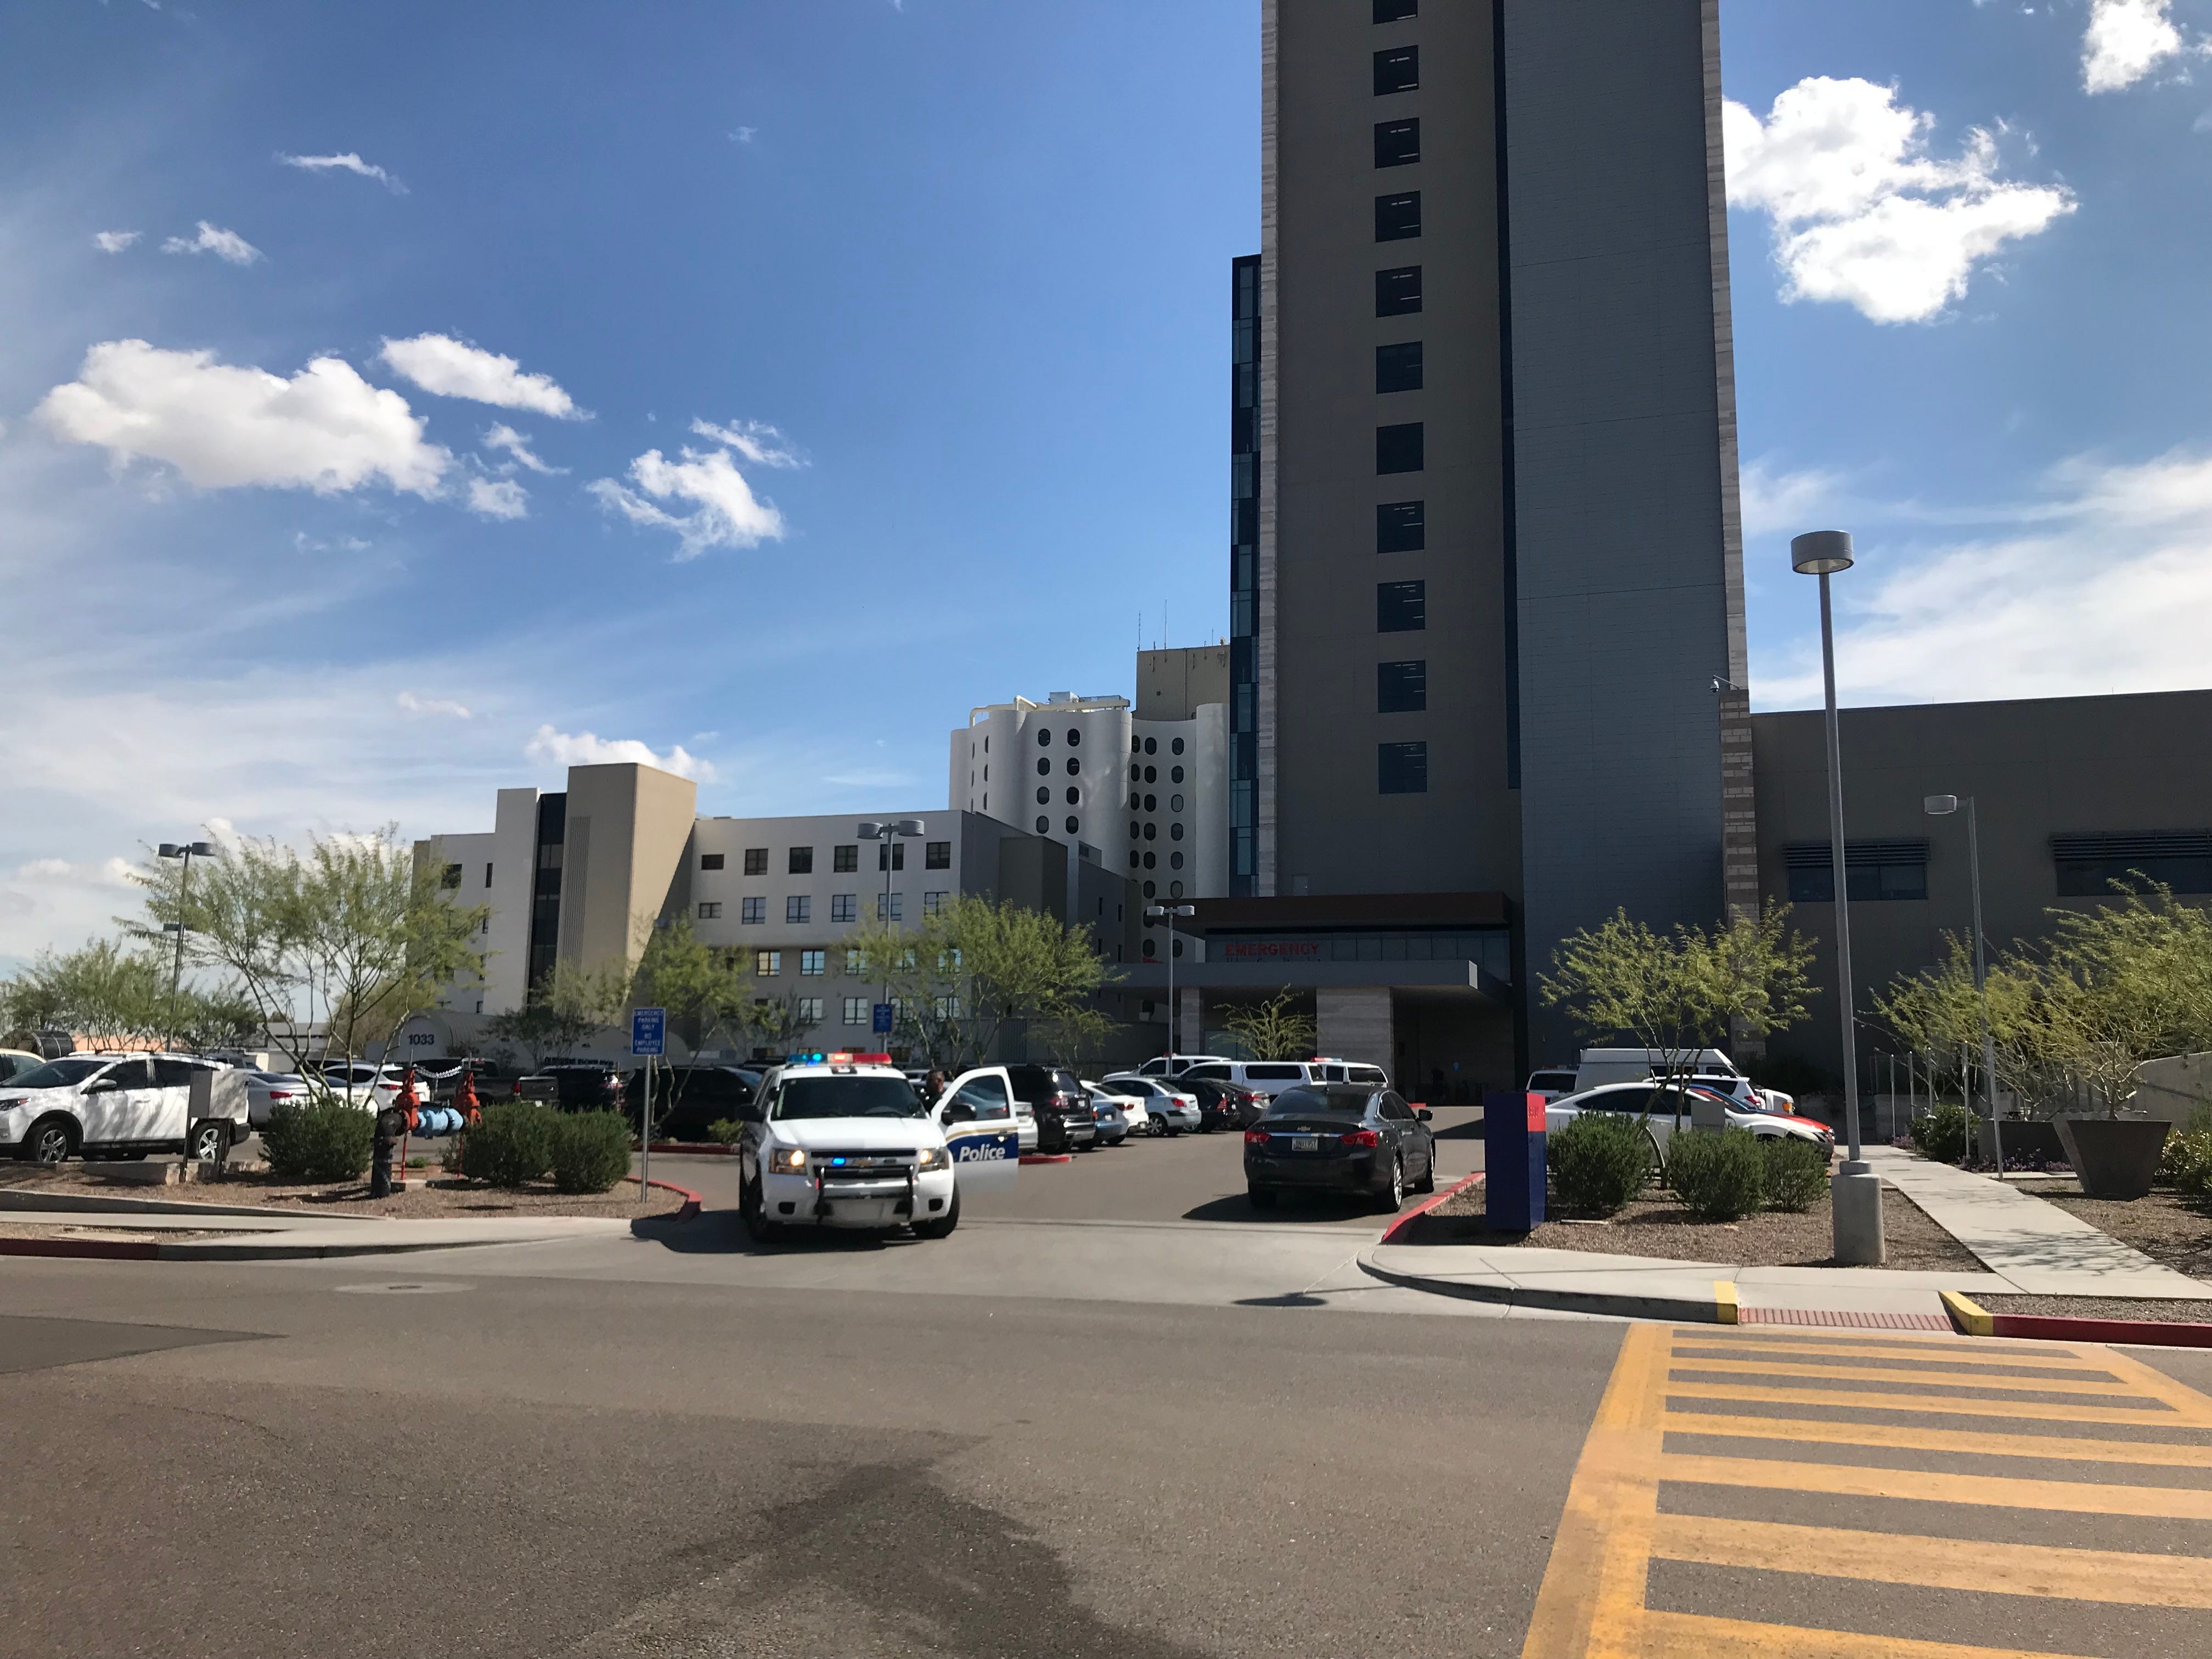 Phoenix police officers gather at Banner University Medical Center after Officer Paul Rutherford, 51, died on March 21, 2019, after being struck by a vehicle while officers were investigating a collision at 75th Avenue and Indian School Road.